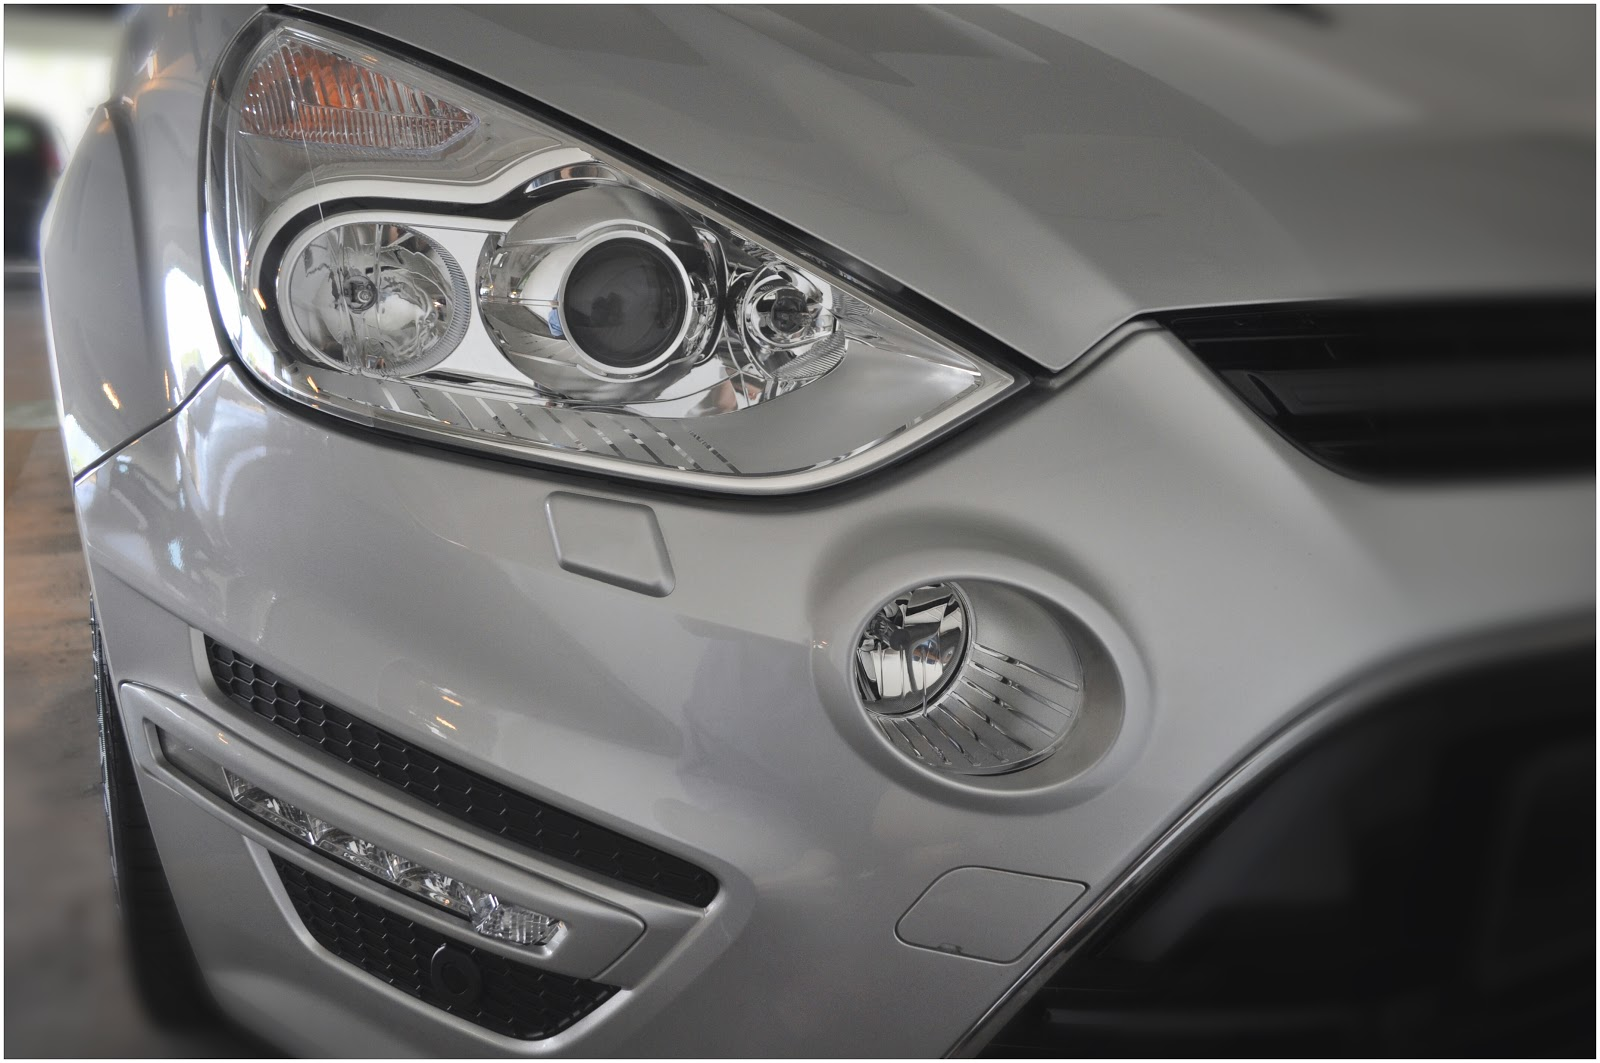 Adaptive auto bi xenon headlights with led daytime running lights and headlamp washer it comes with the follow me home lights feature where the